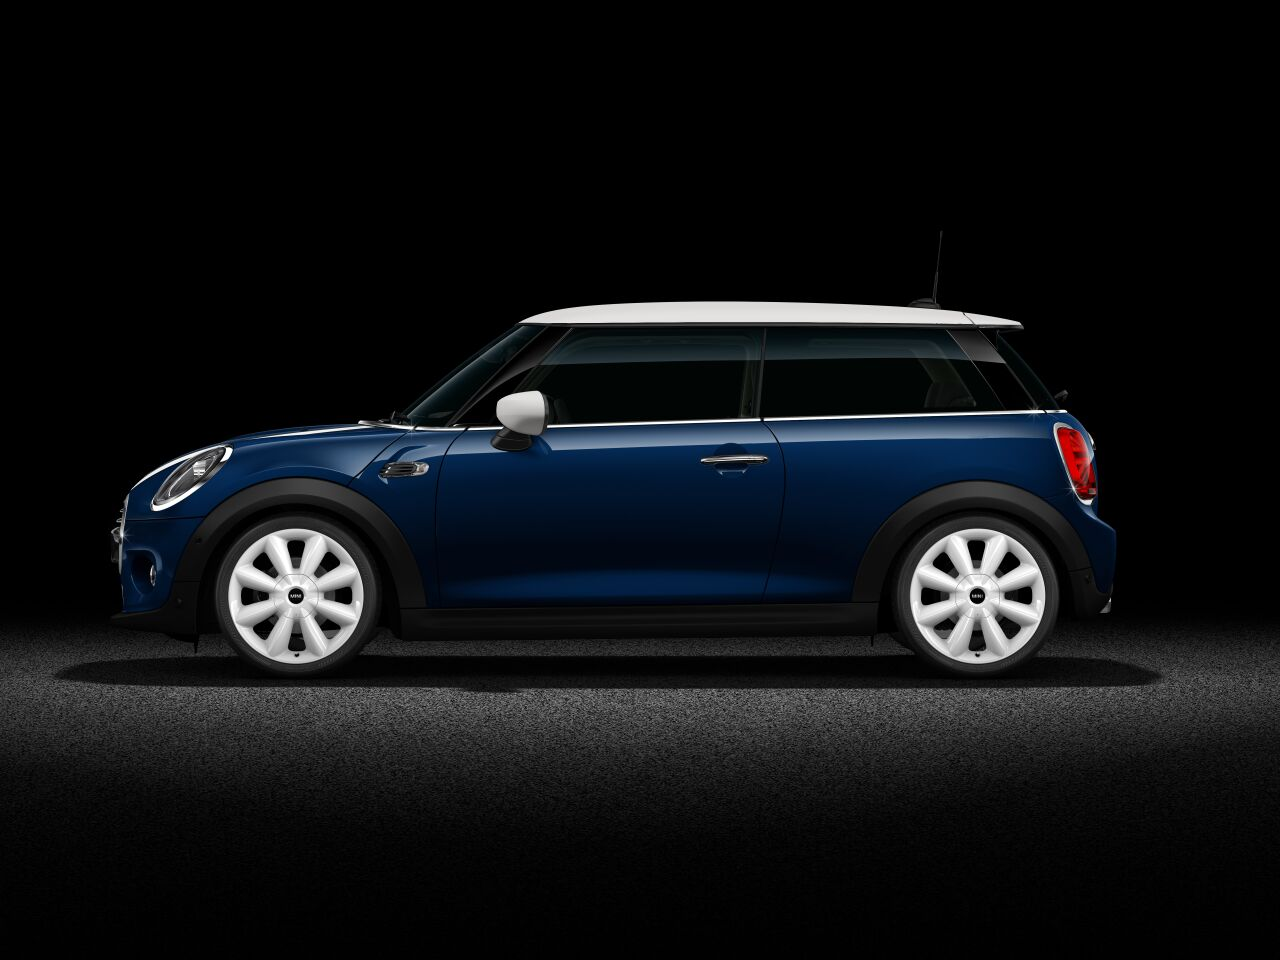 MINI Cooper D 3 Door side profile